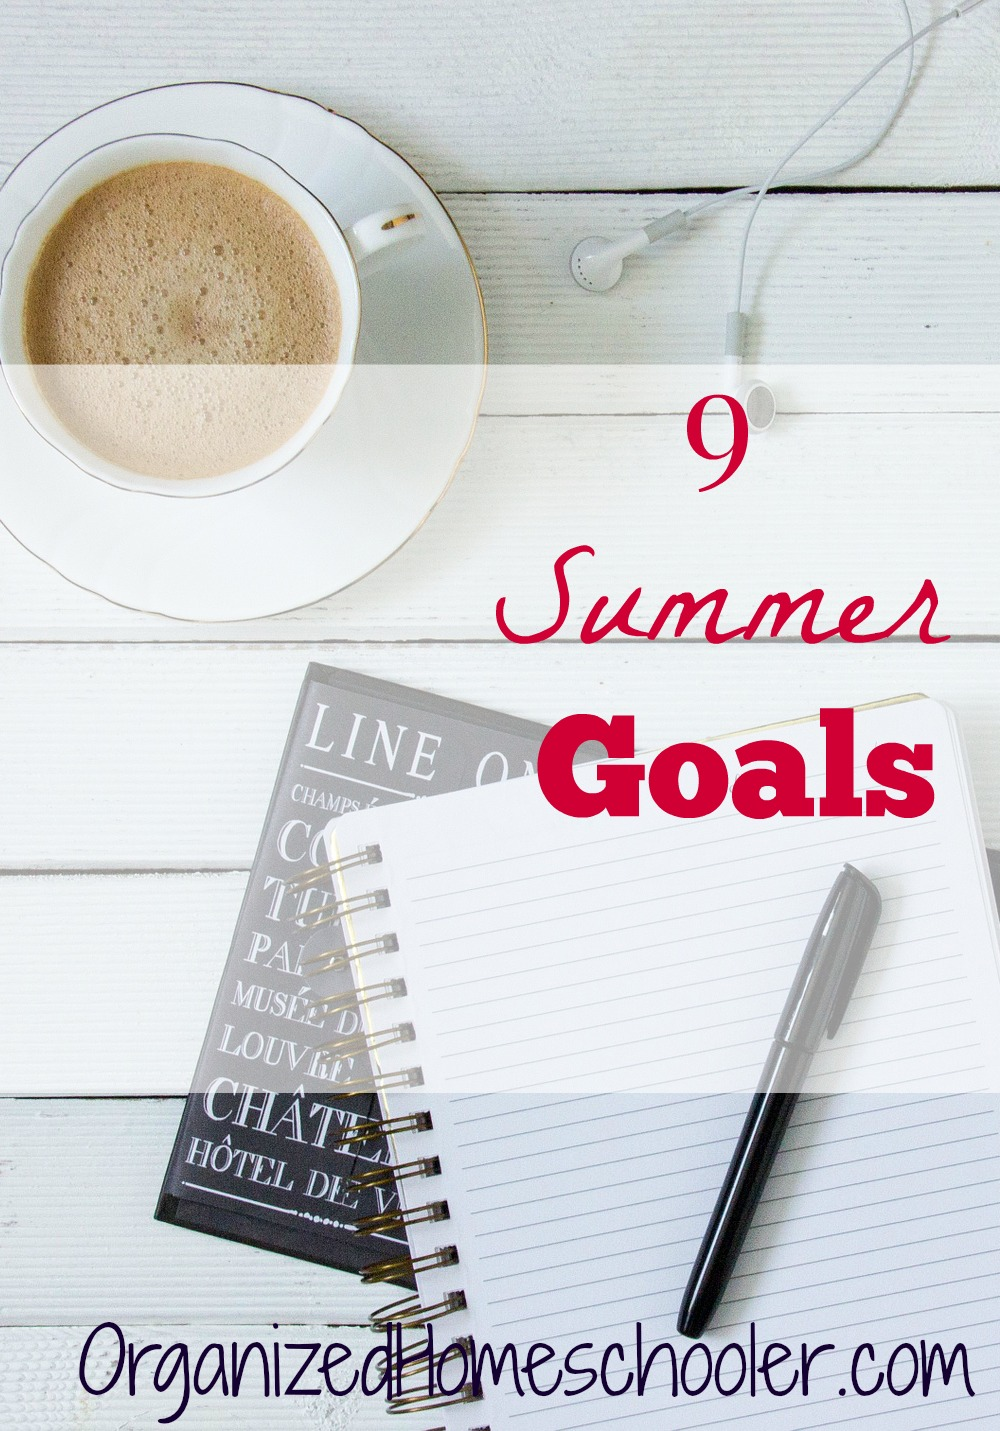 I have 9 goals this summer! I need to prepare my homeschool and my home for fall while having fun!